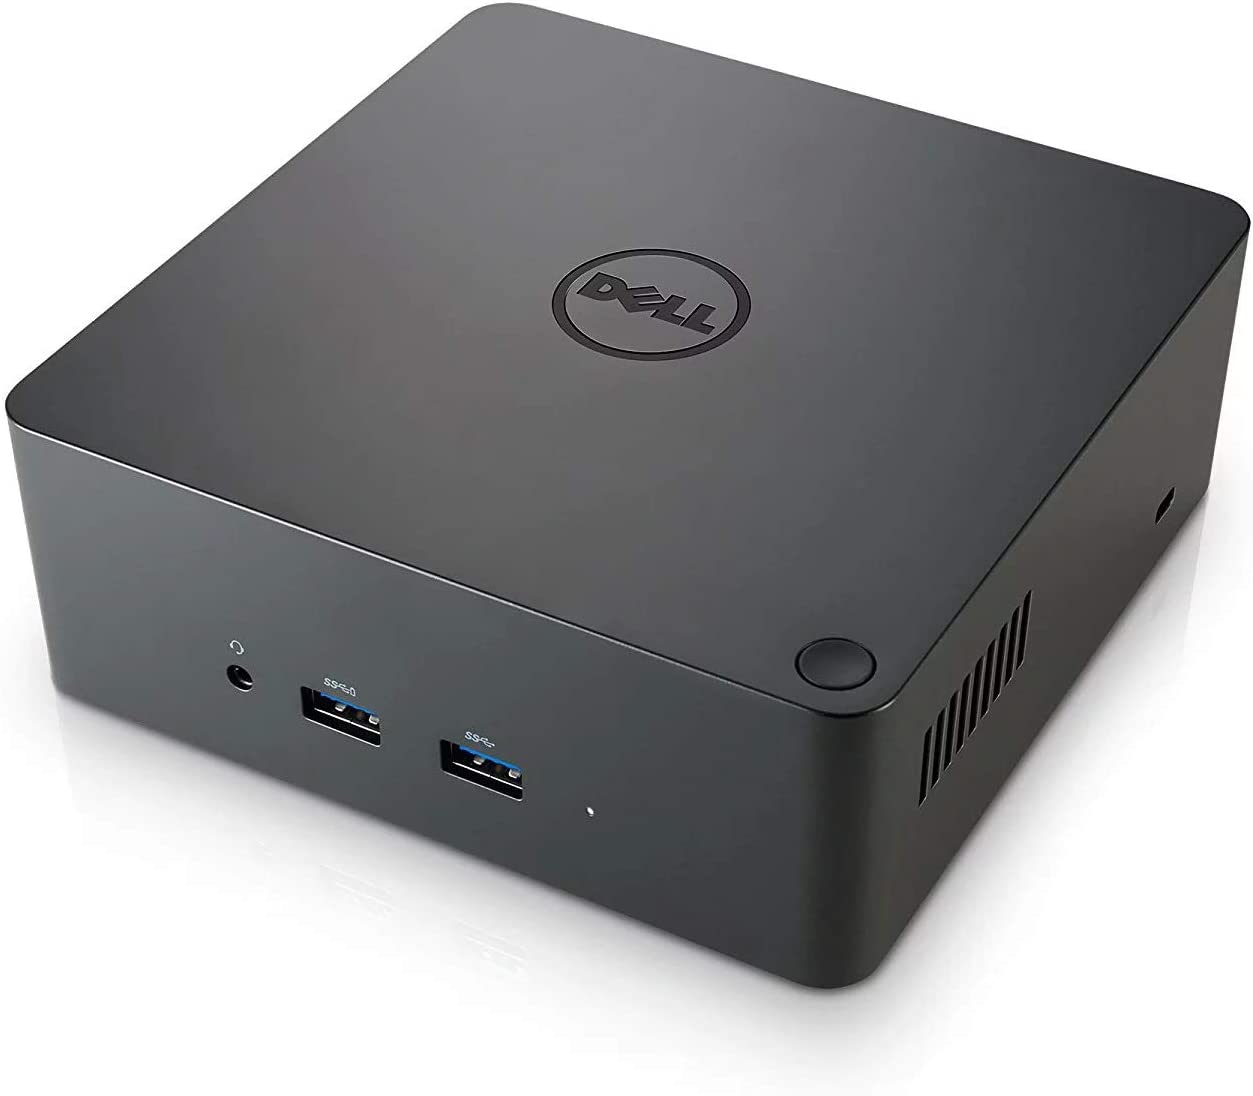 Dell Business Thunderbolt 3 (USB-C) Dock - TB16 with 240W Adapter 452-BCNU